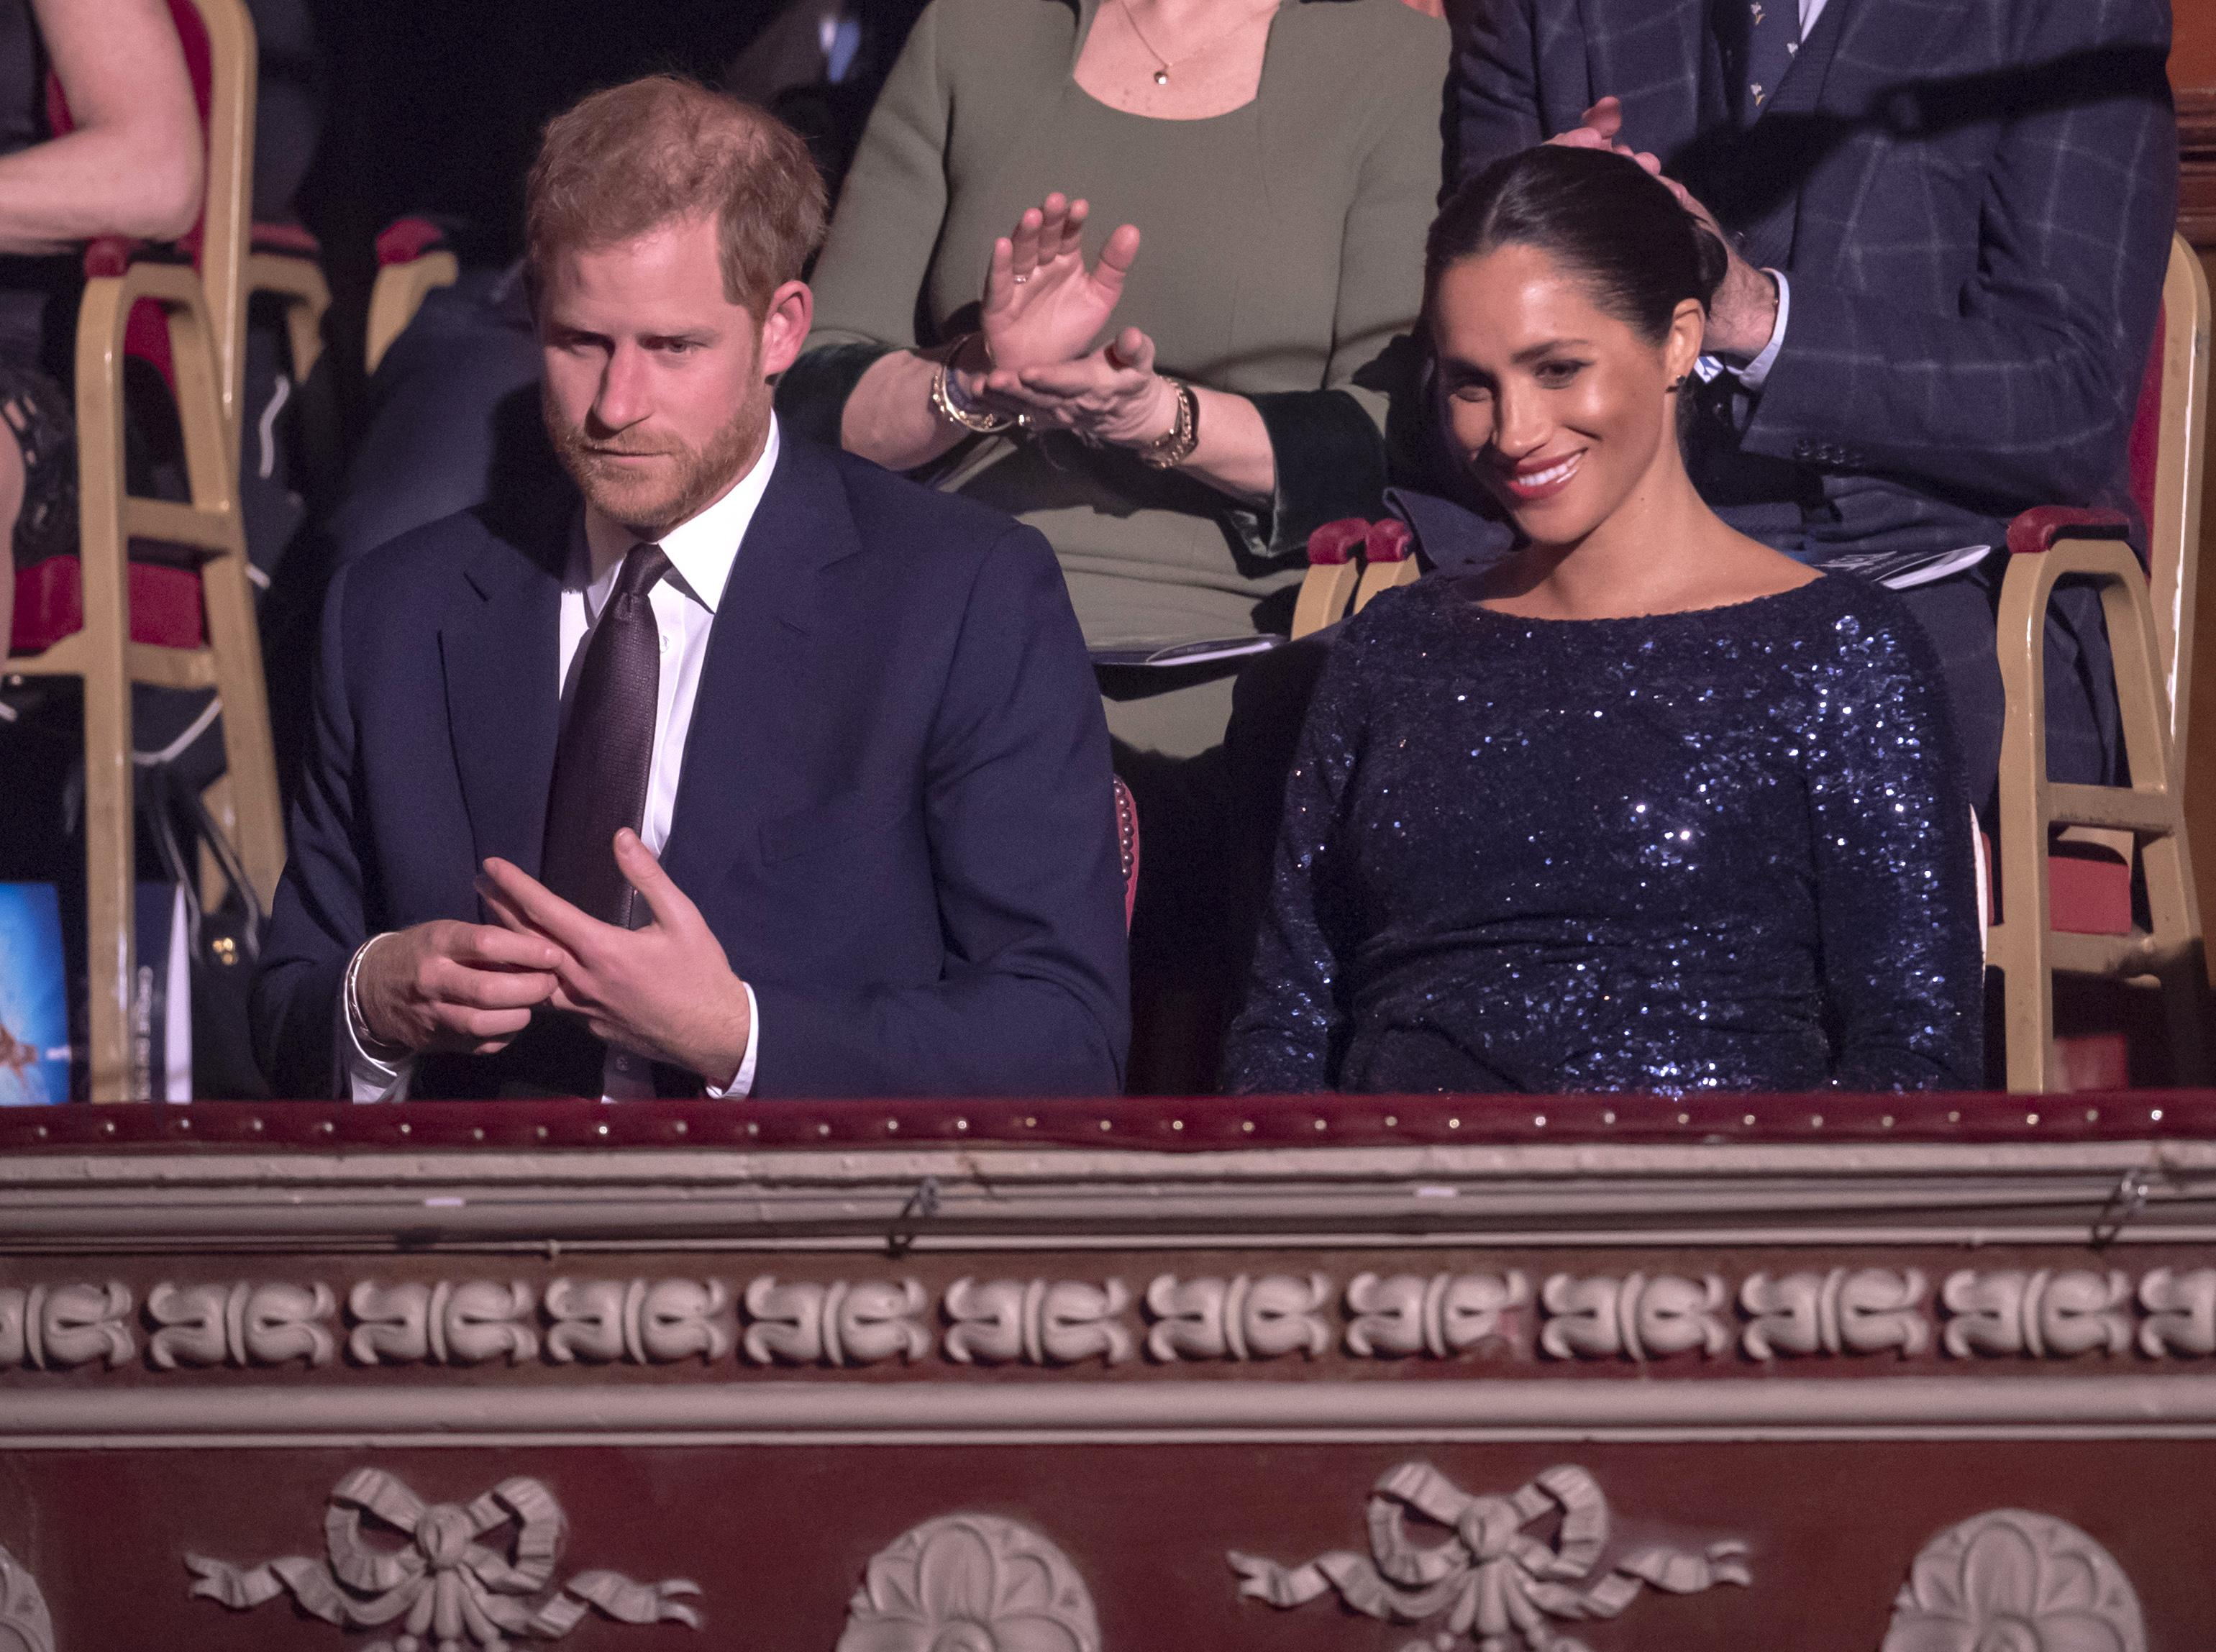 Prince Harry and Meghan Markle moving out